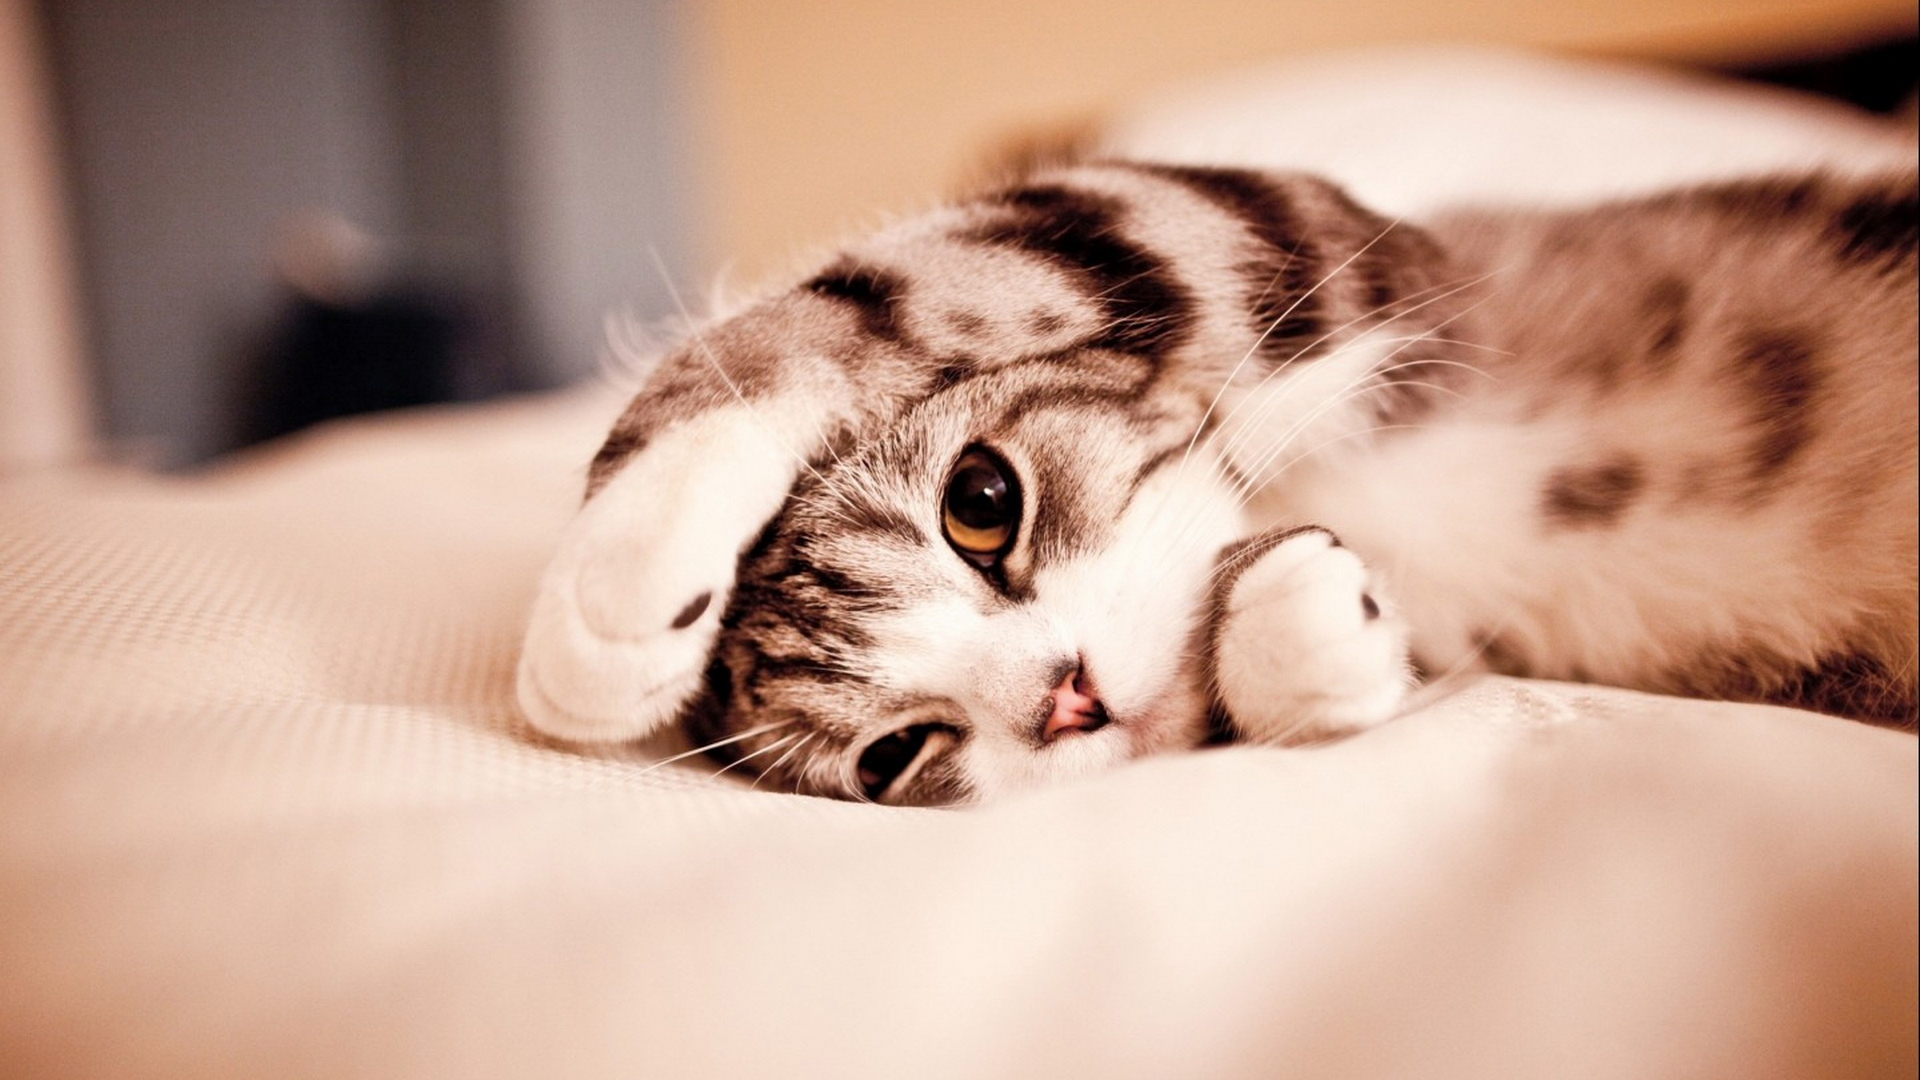 1920x1080 Cute Kitty Desktop Pc And Mac Wallpaper Pictures 1920x1080